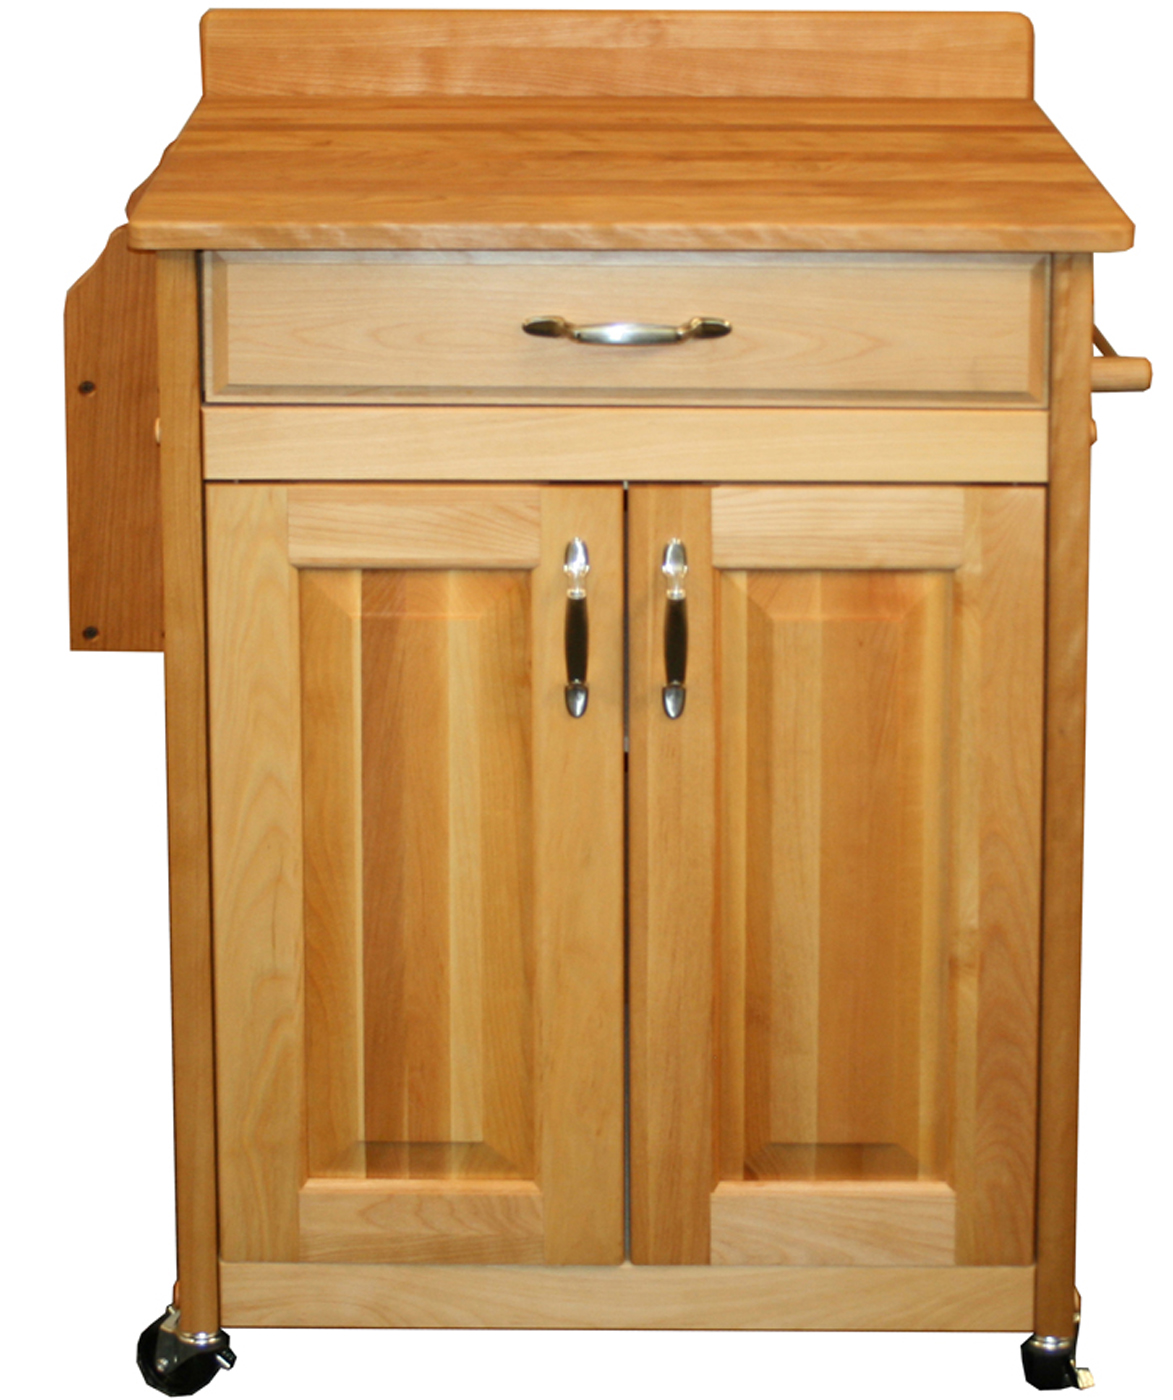 Standard Kitchen Island Size Affordable Resin Solid